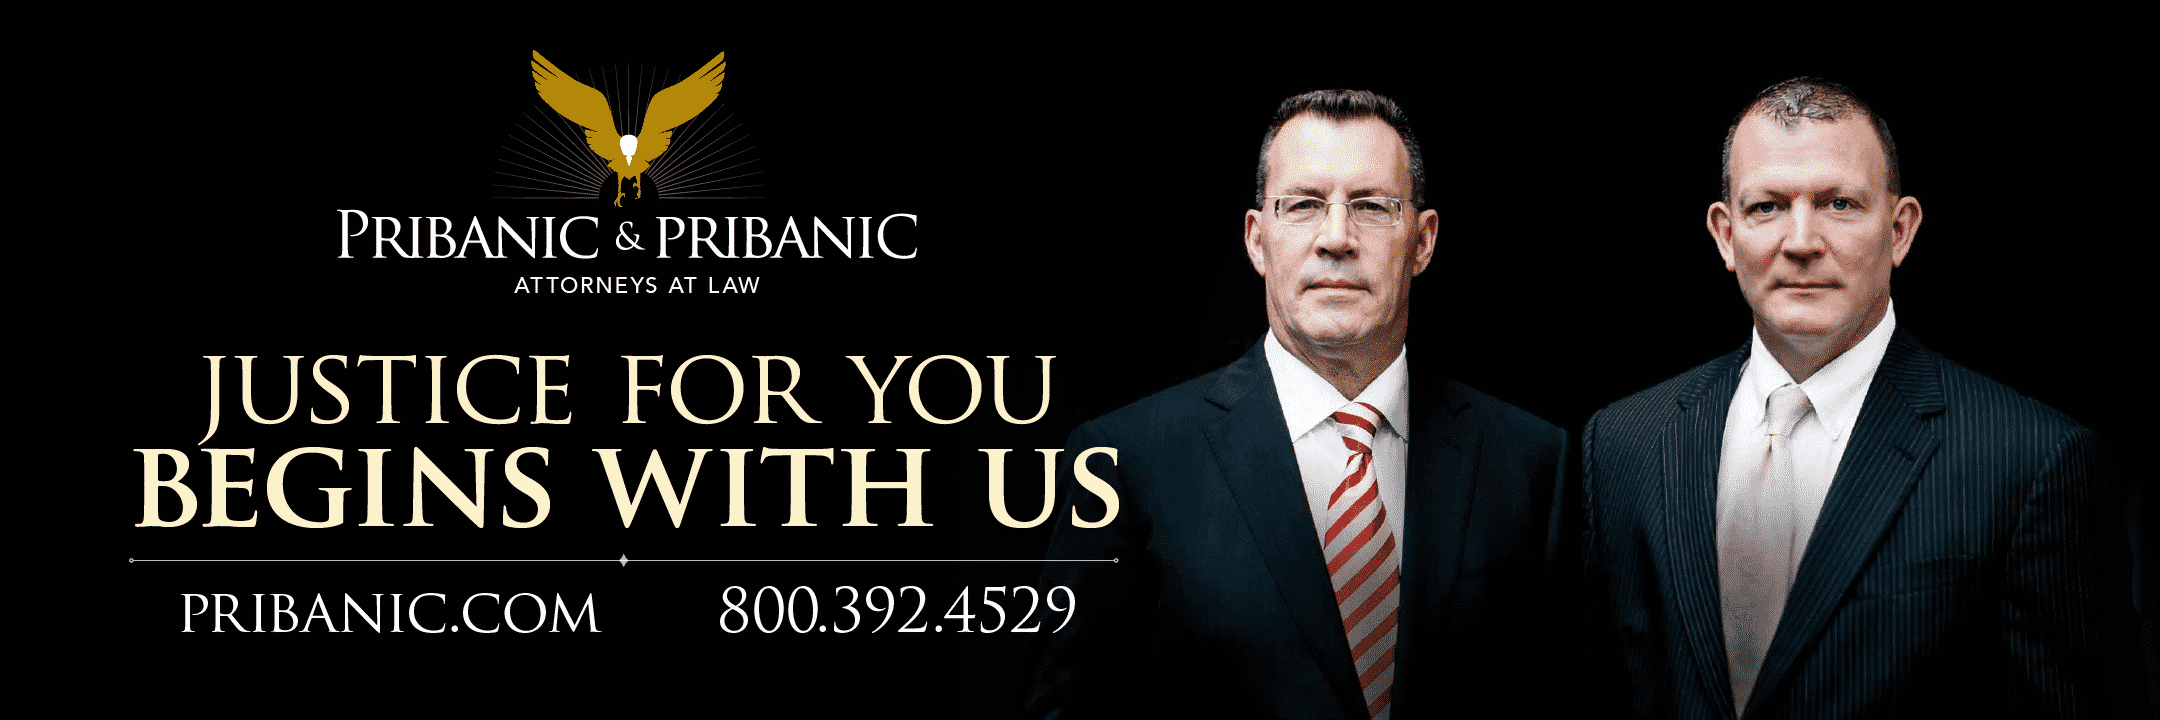 "Injury Lawyer - Pribanic & Pribanic ""Justice For The People"""